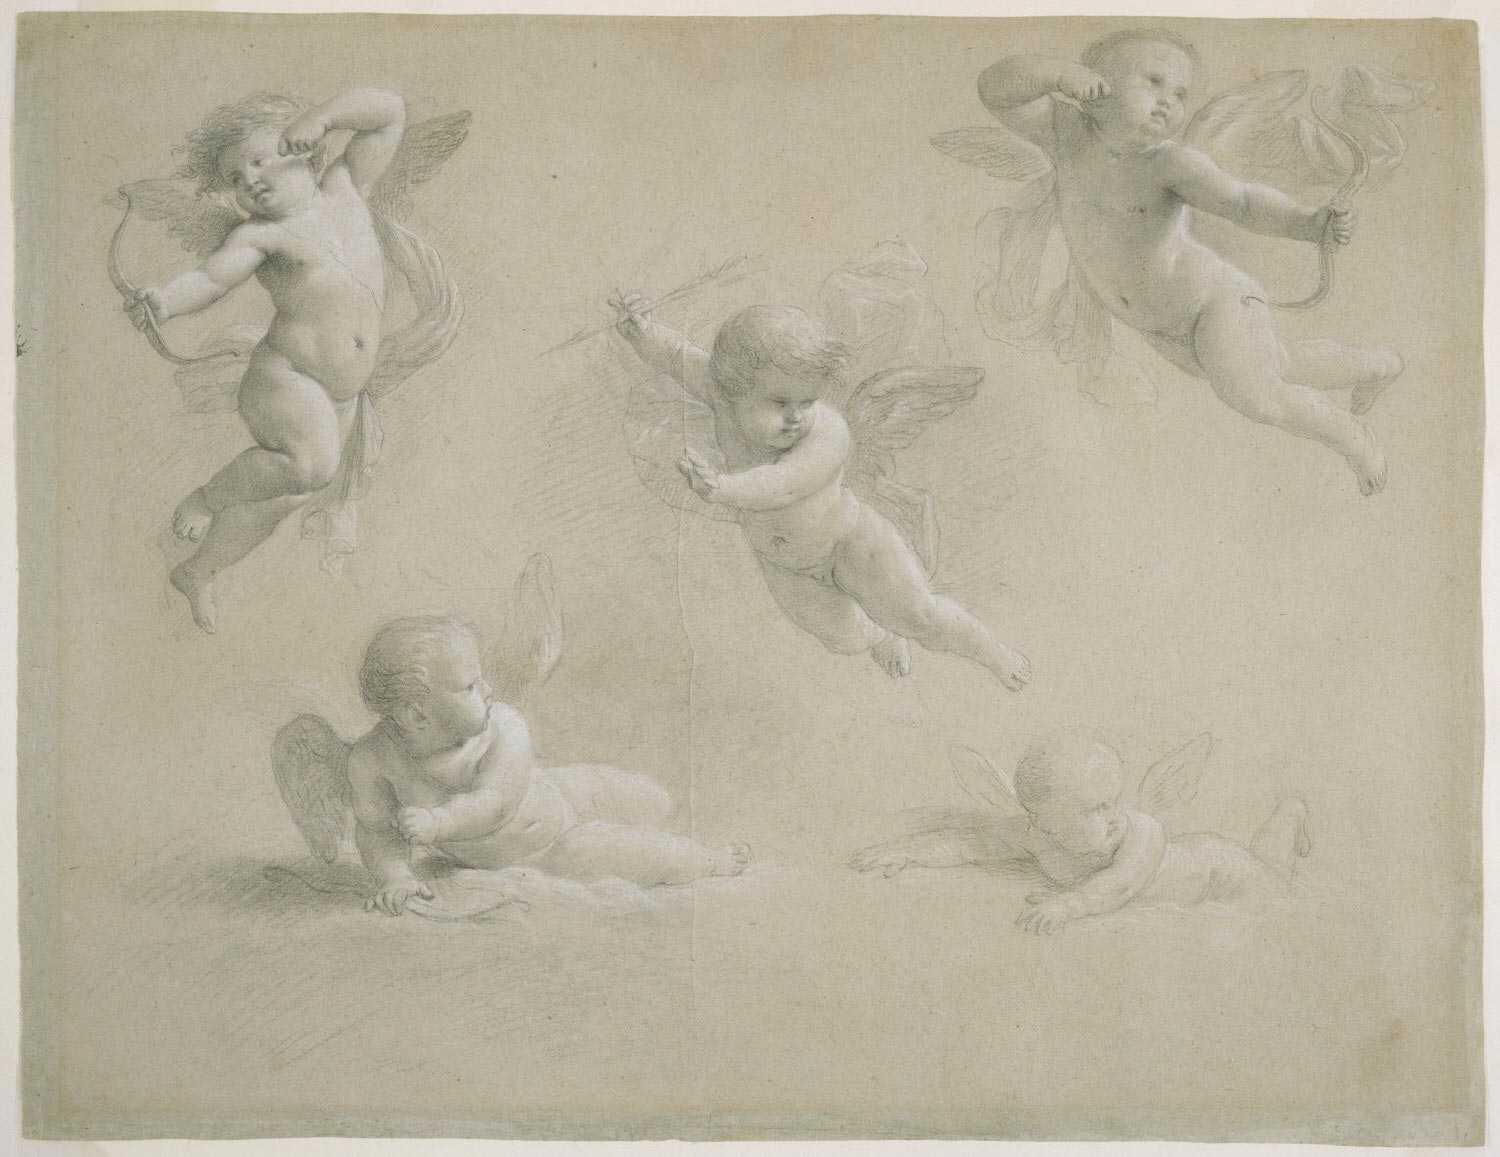 Five Putti: Studies for